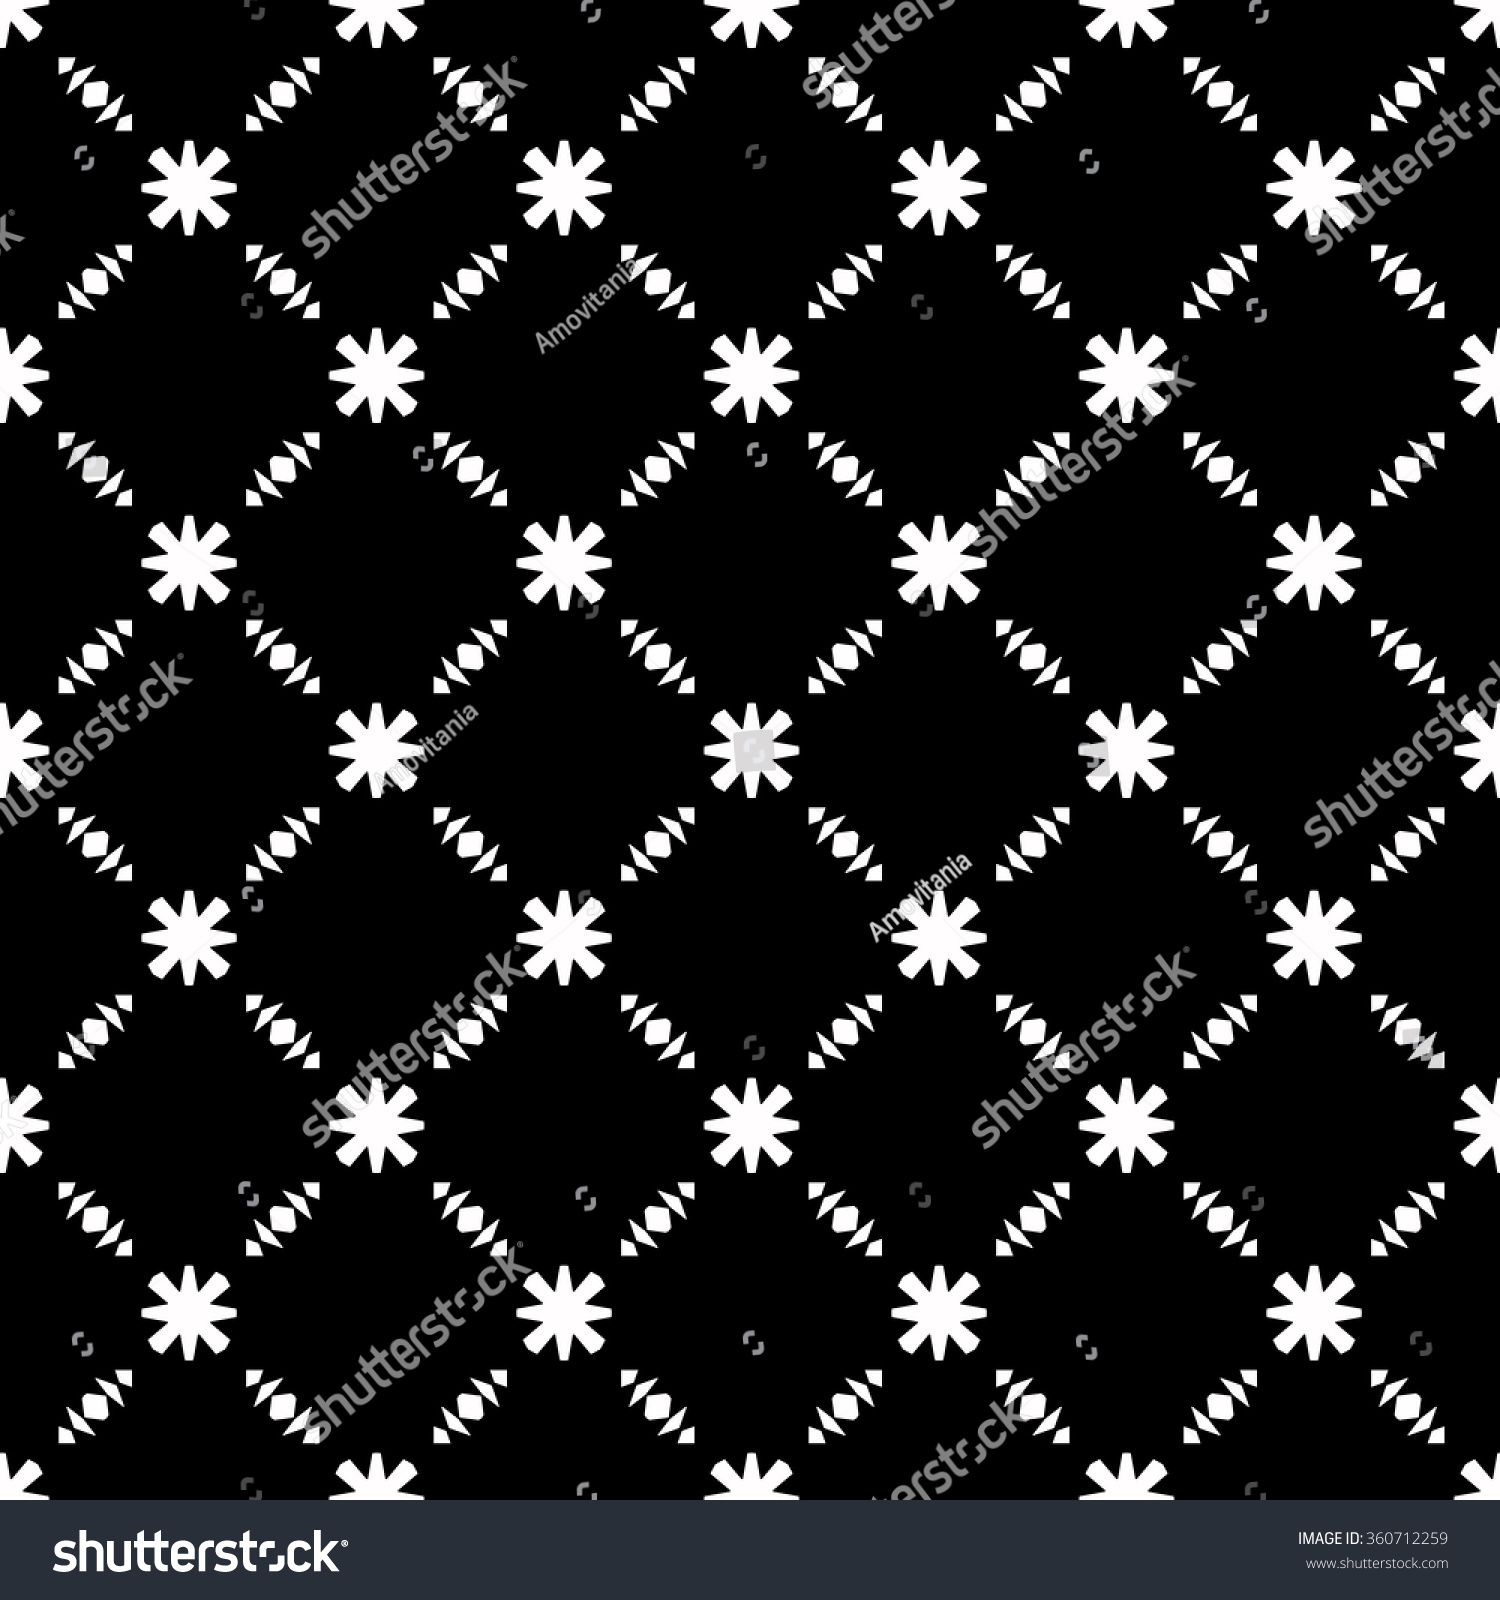 Black white graphic seamless pattern elegant stock vector for Simple elegant wallpaper